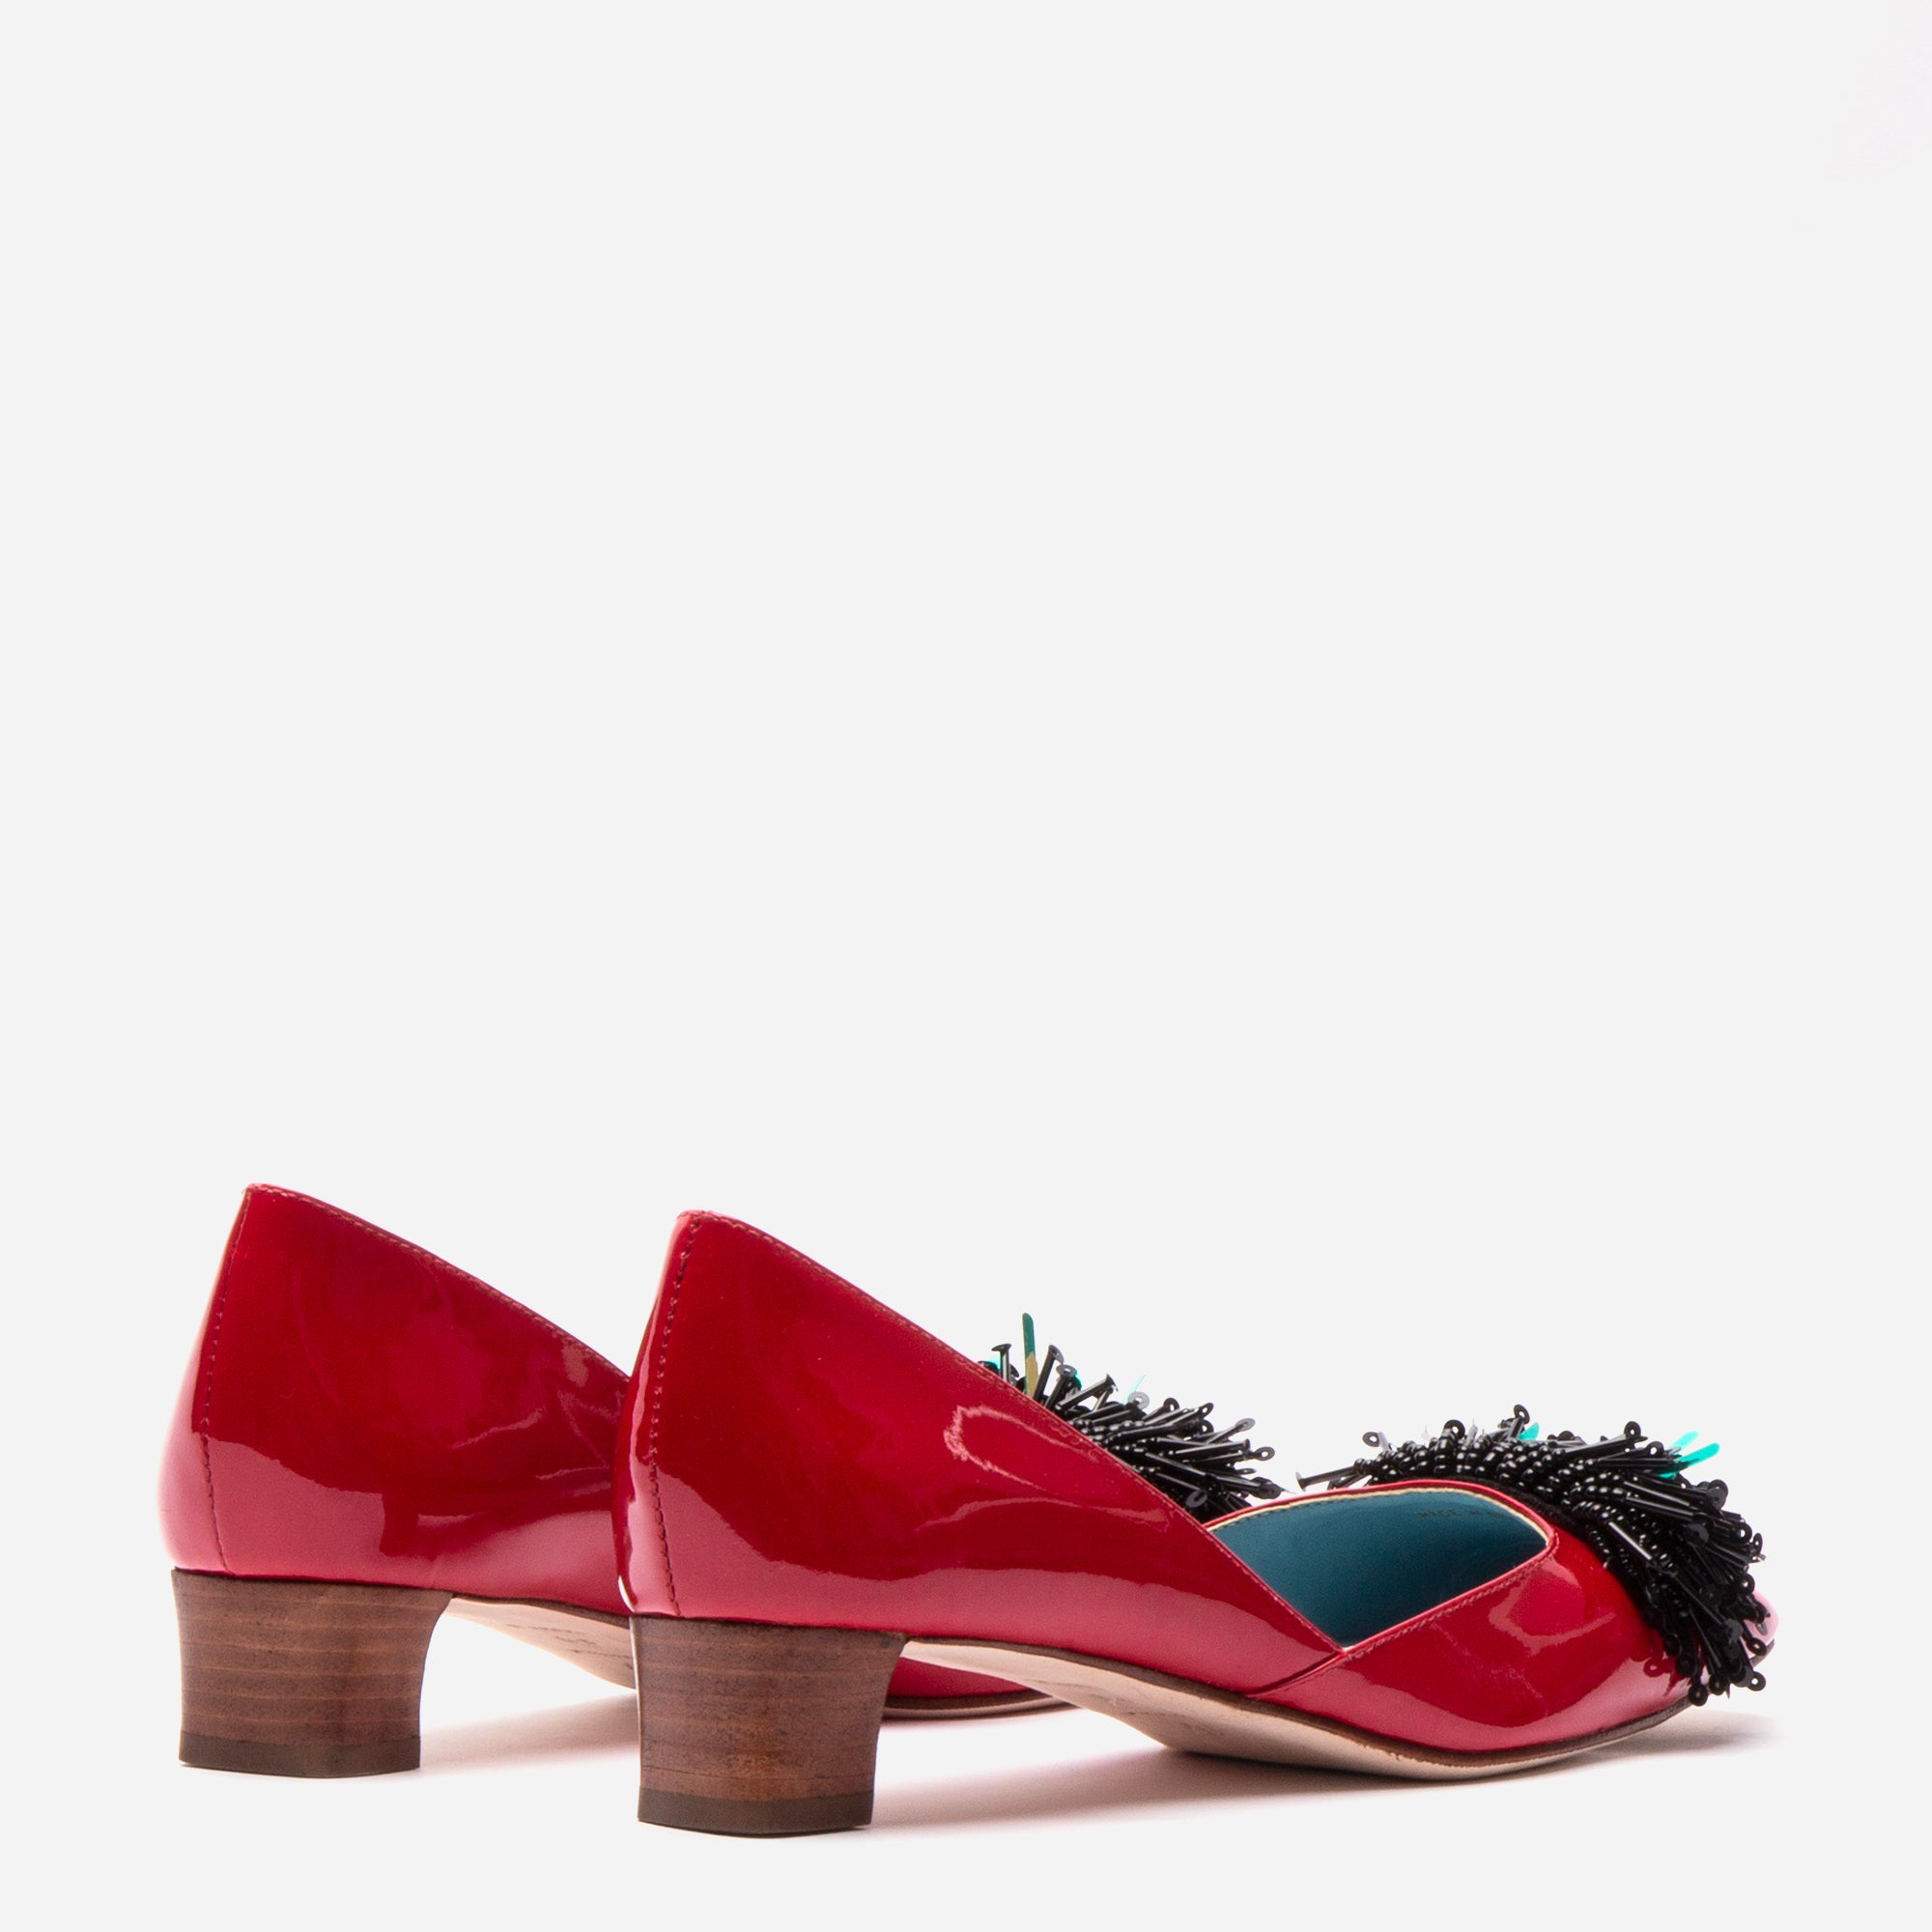 McCall Stacked Heel D'Orsay Red Patent